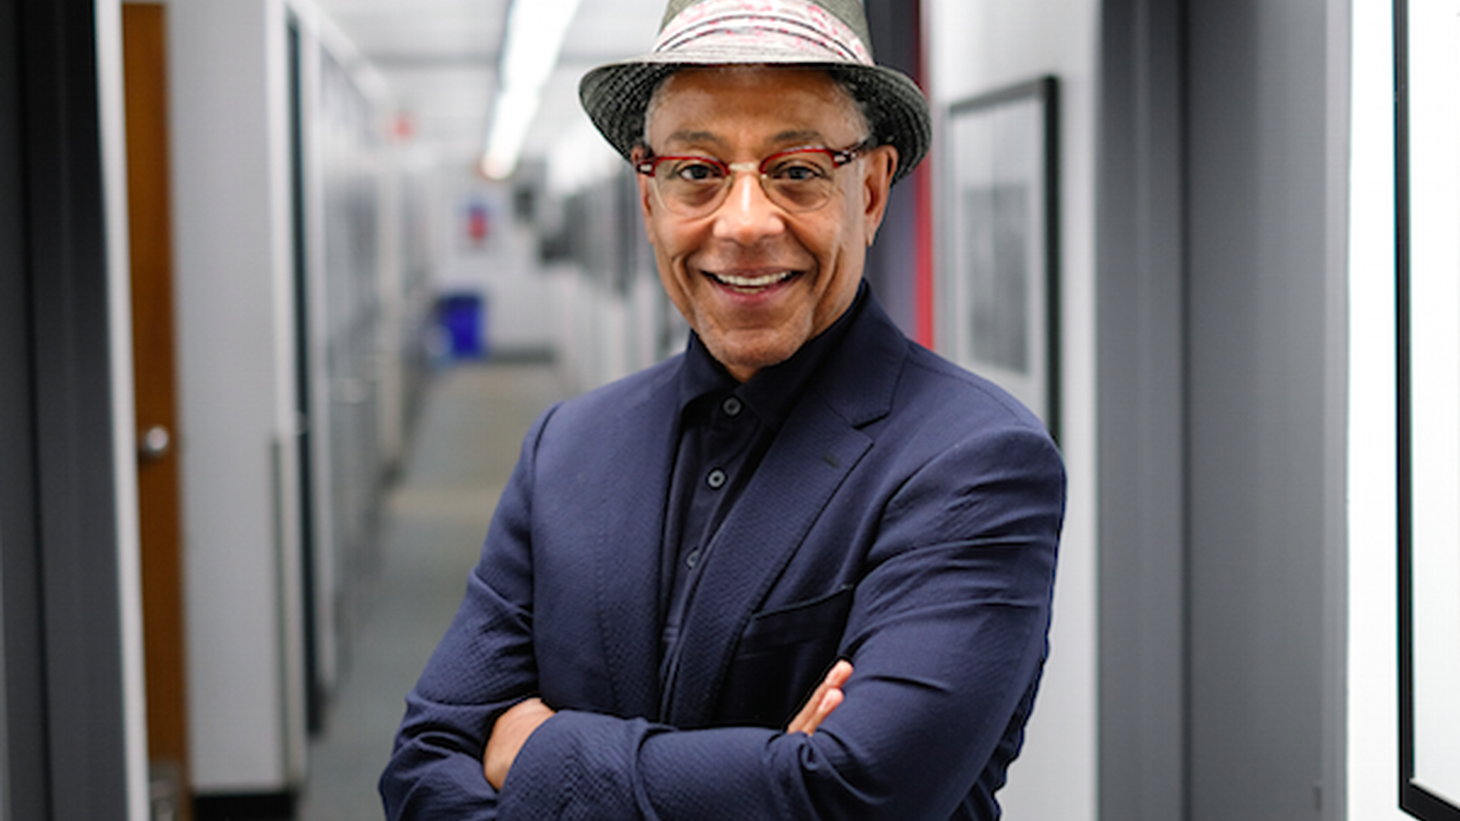 "Giancarlo Esposito plays Gus Fring on ""Better Call Saul"" and its much beloved predecessor ""Breaking Bad."" Fring is Albuquerque's favorite fried chicken magnate and a ruthless crystal meth kingpin."